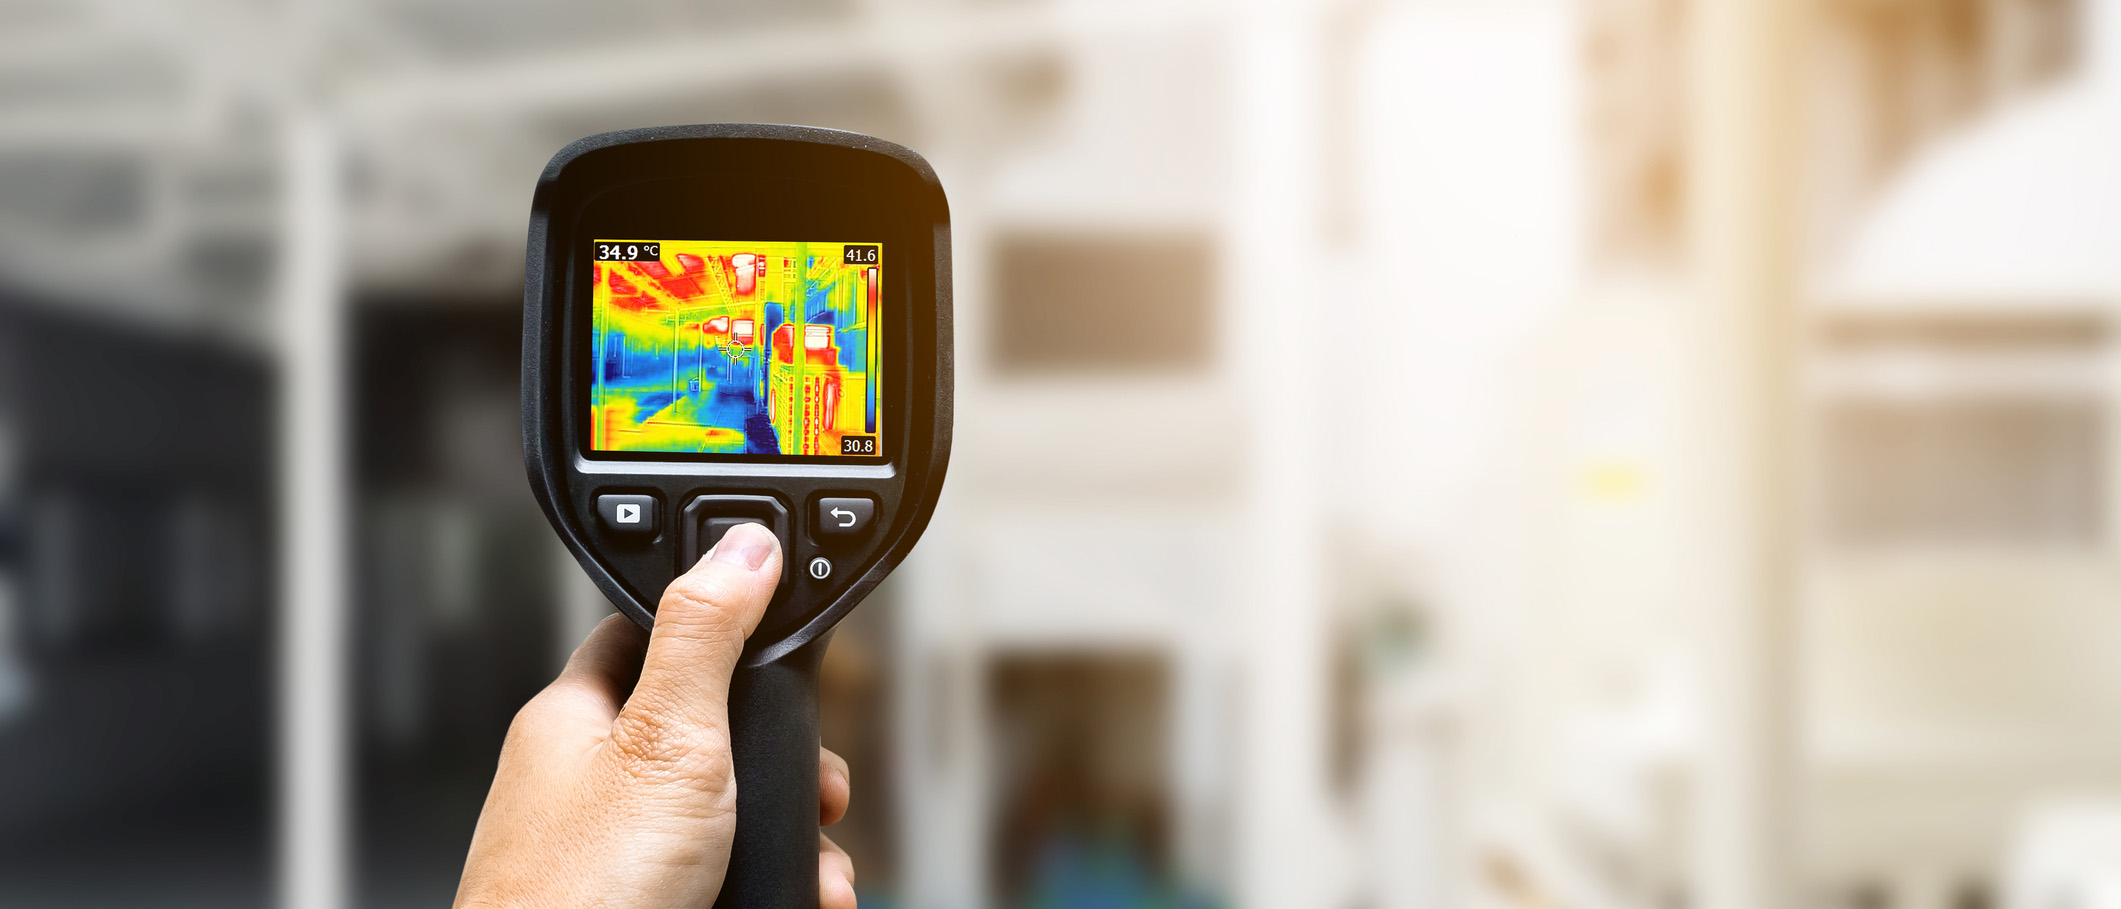 Technician using thermography camera to check temperature in factory